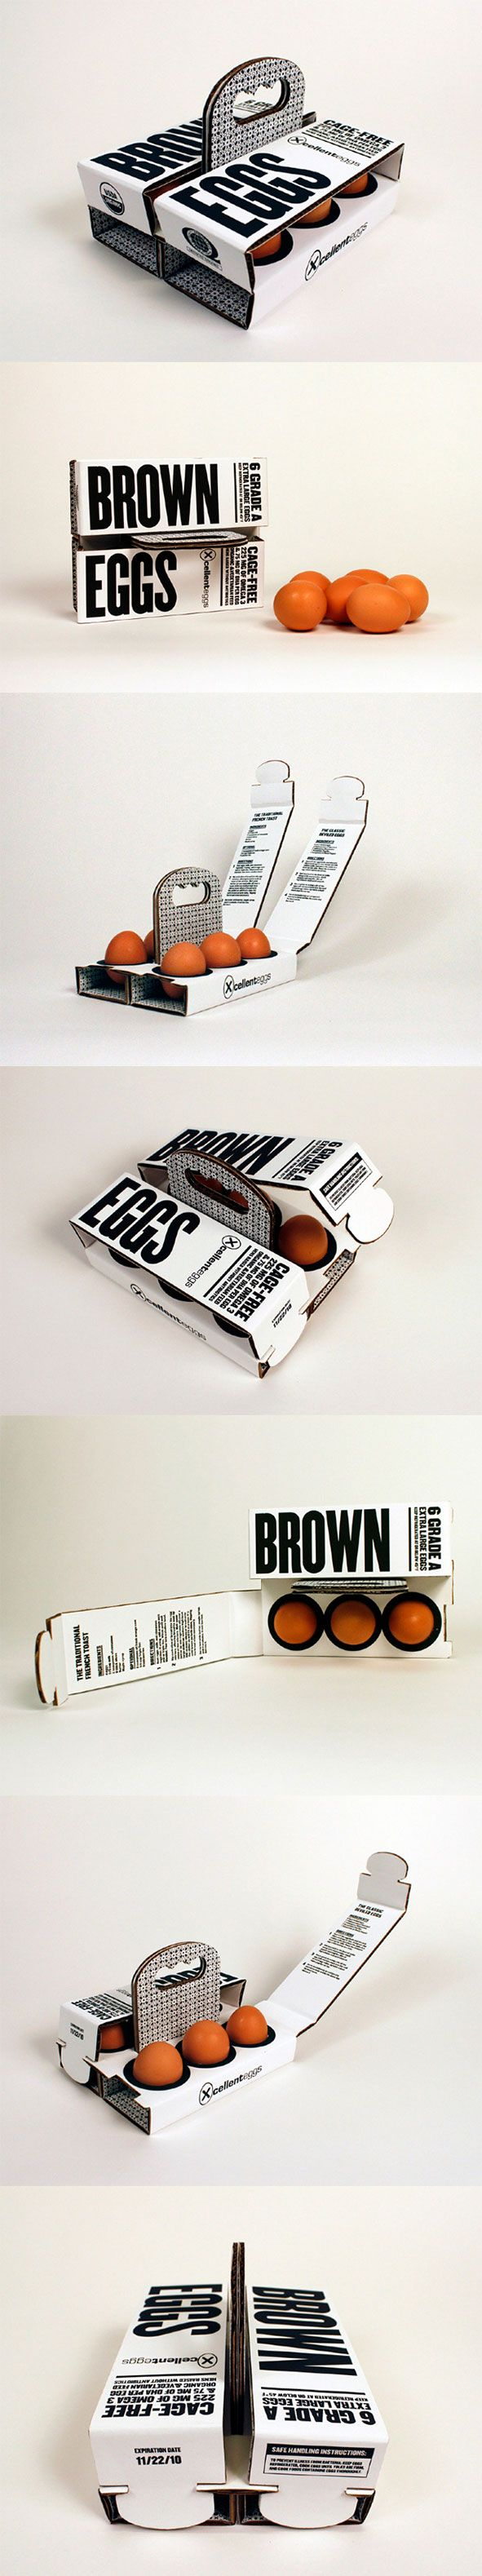 6 Brown Eggs (Concept) *** Designed by Sarah Machicado, a graduate from Maryland Institute College of Art.